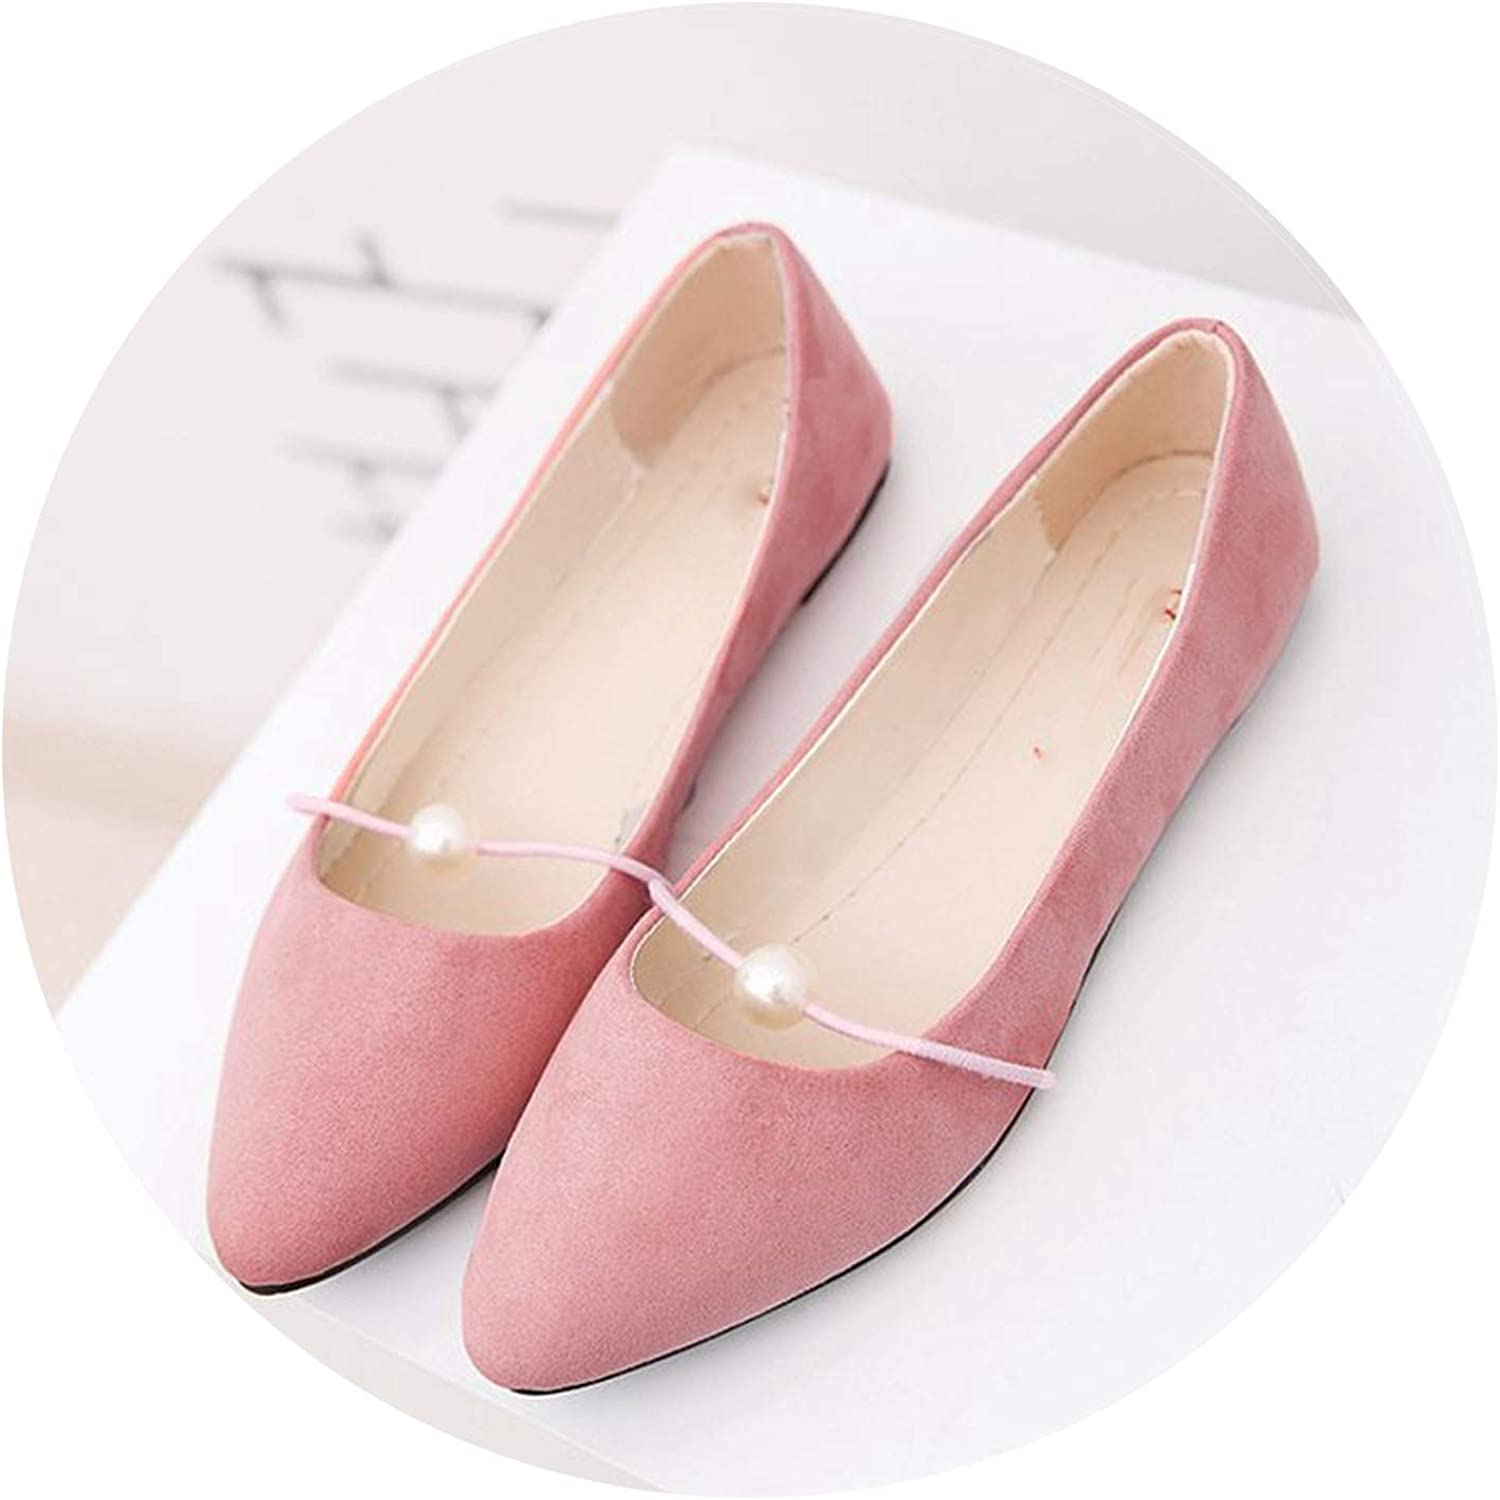 Dress-shop Shallow Flats Womens Suede Flat Heel Pearl Flat Heel Pointed Casual Ladies Flat Shoes,Pink,6.5,US